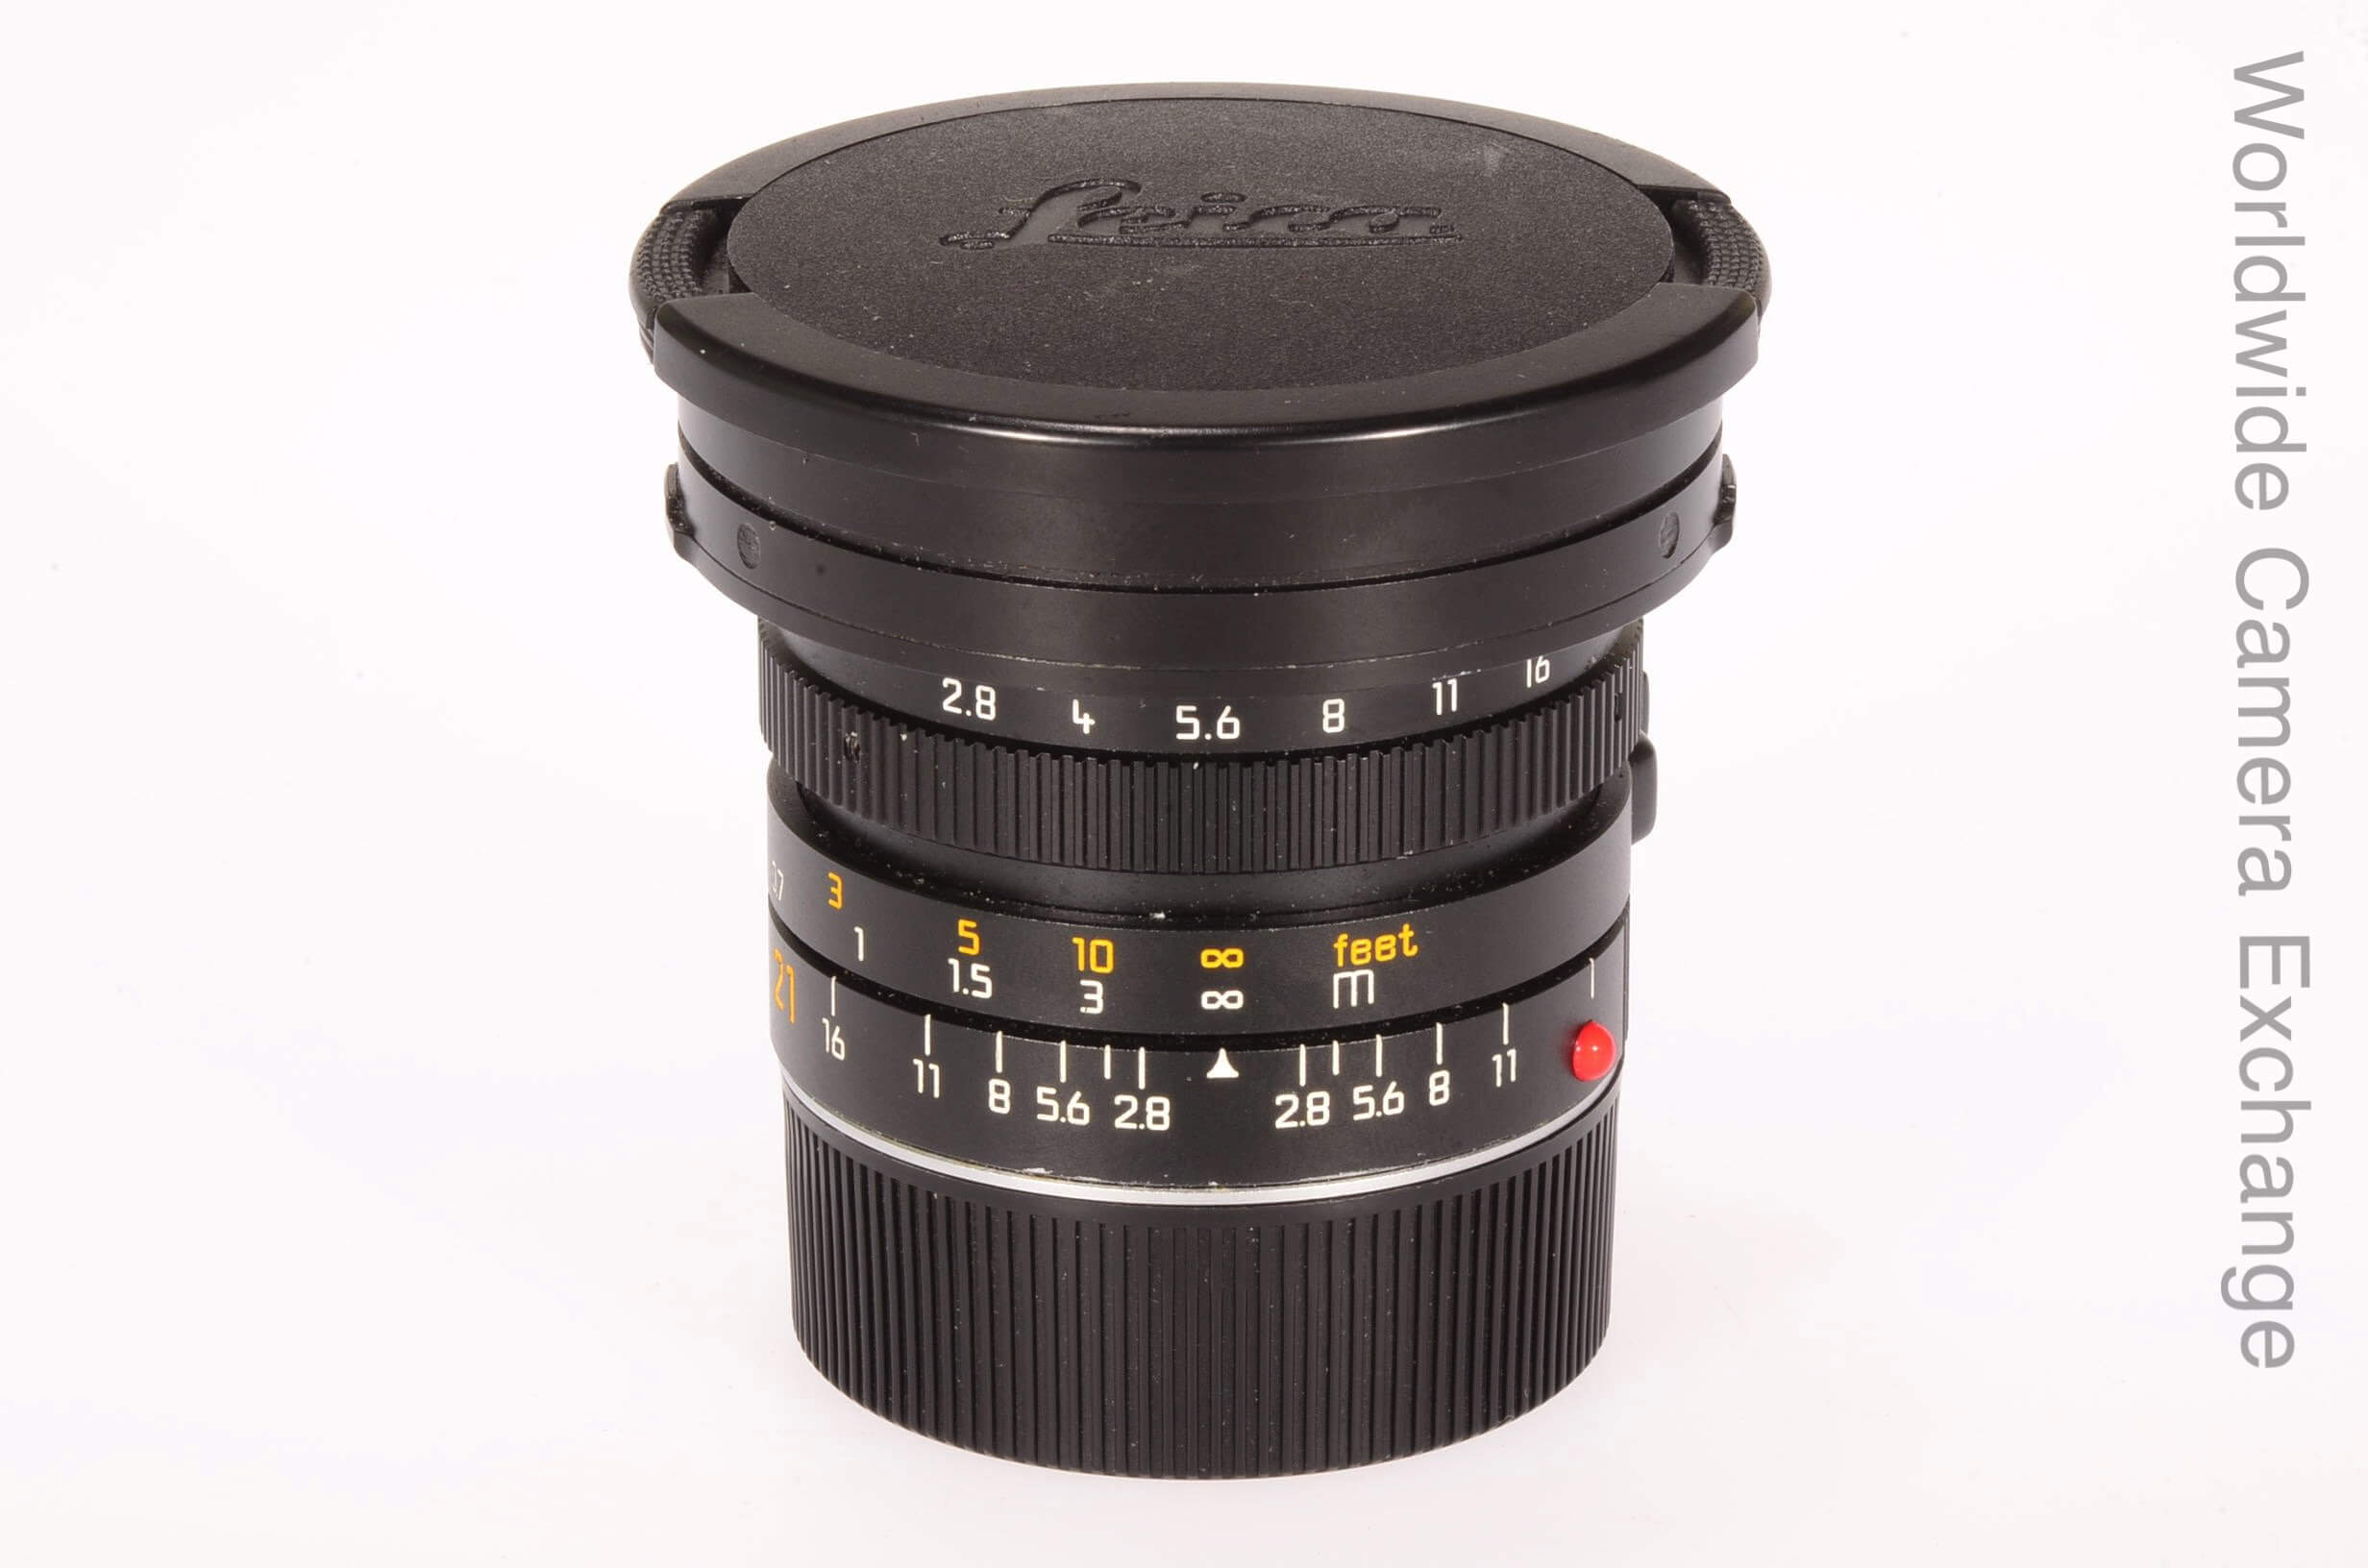 Leica 21mm f2.8 Elmarit, later version, an excellent user!